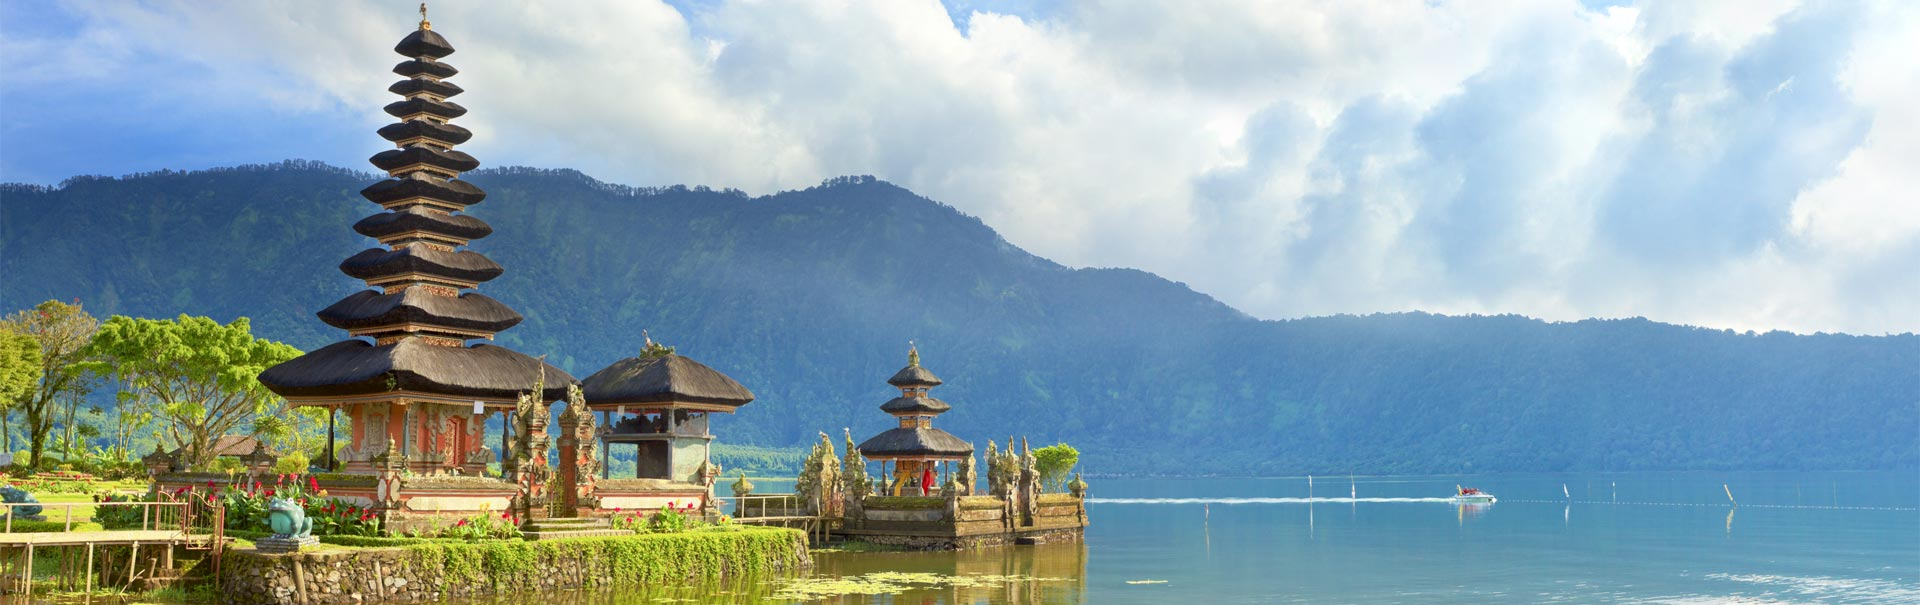 6 Days 5 Nights Bali Extravaganza Customized Holidays Tour Package